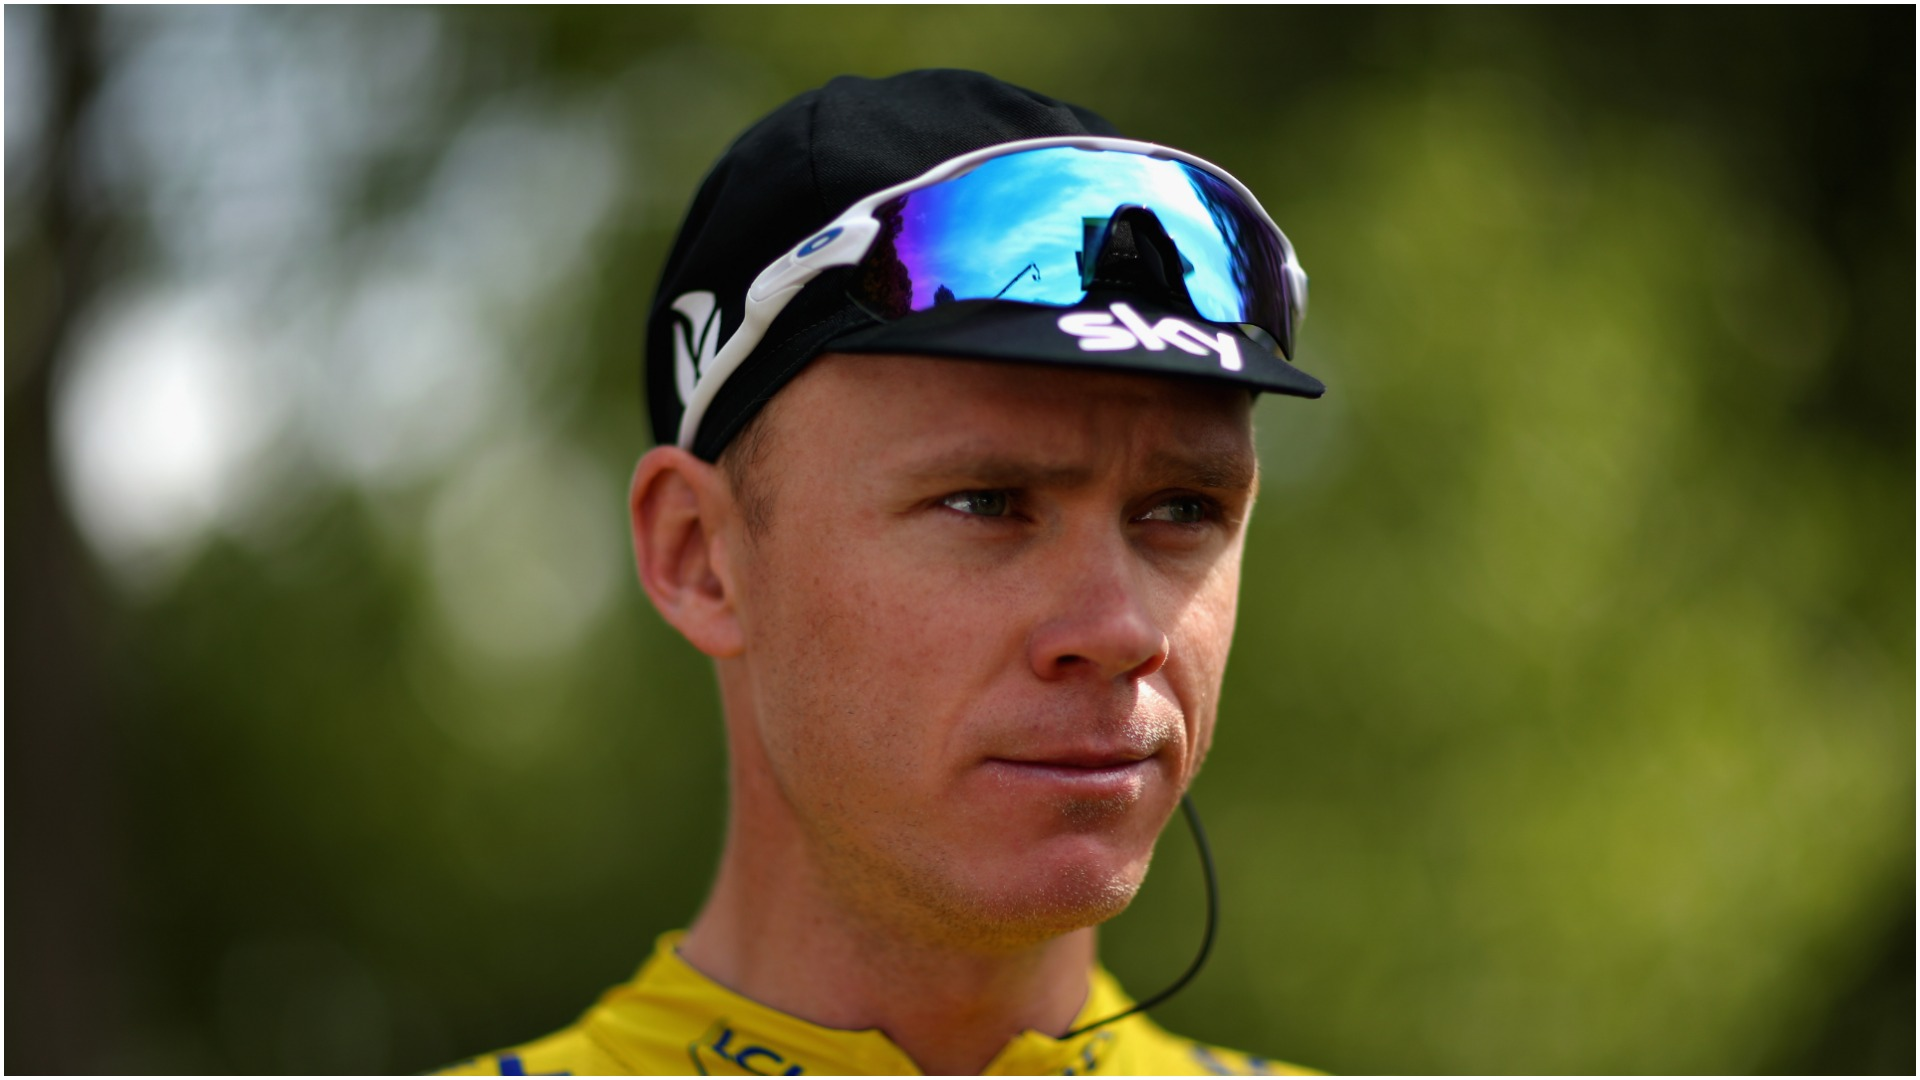 Chris Froome to miss Tour de France after 'very serious accident'